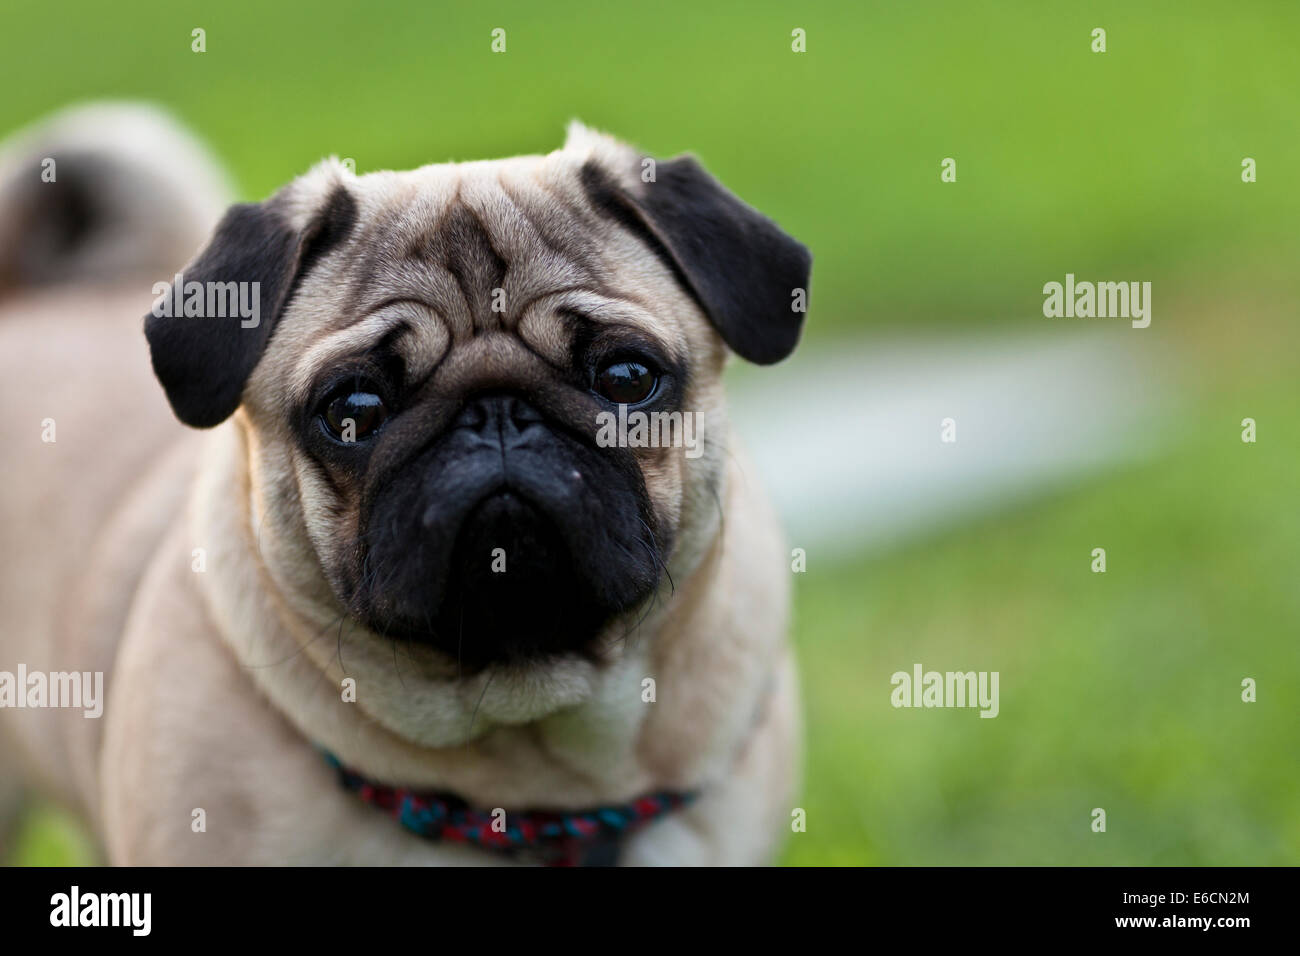 Pug on a field - Stock Image